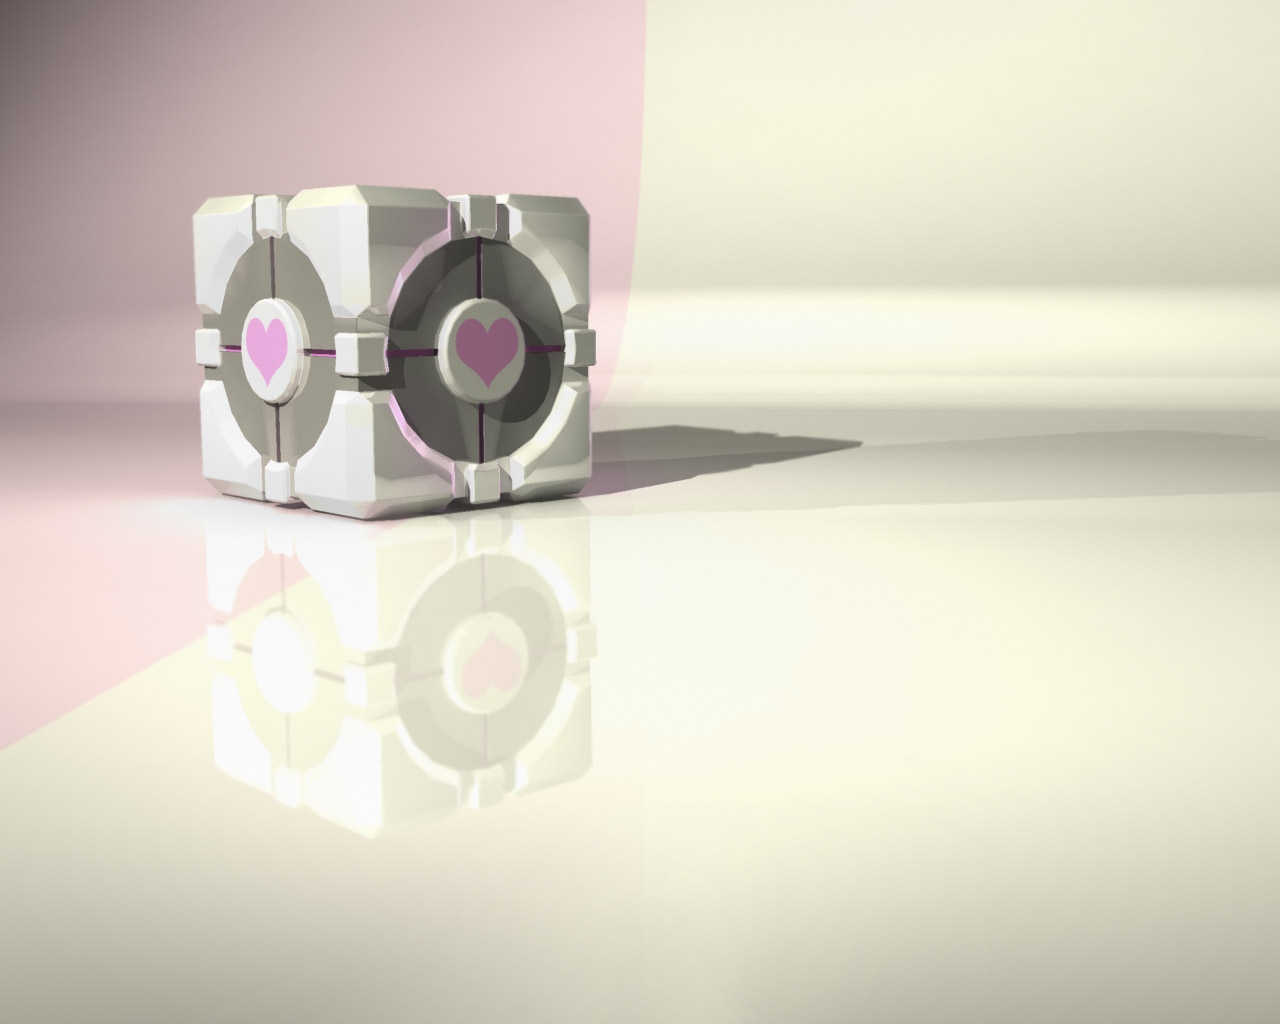 Companion_Cube_Wallpaper_by_MikeWonKon.jpg